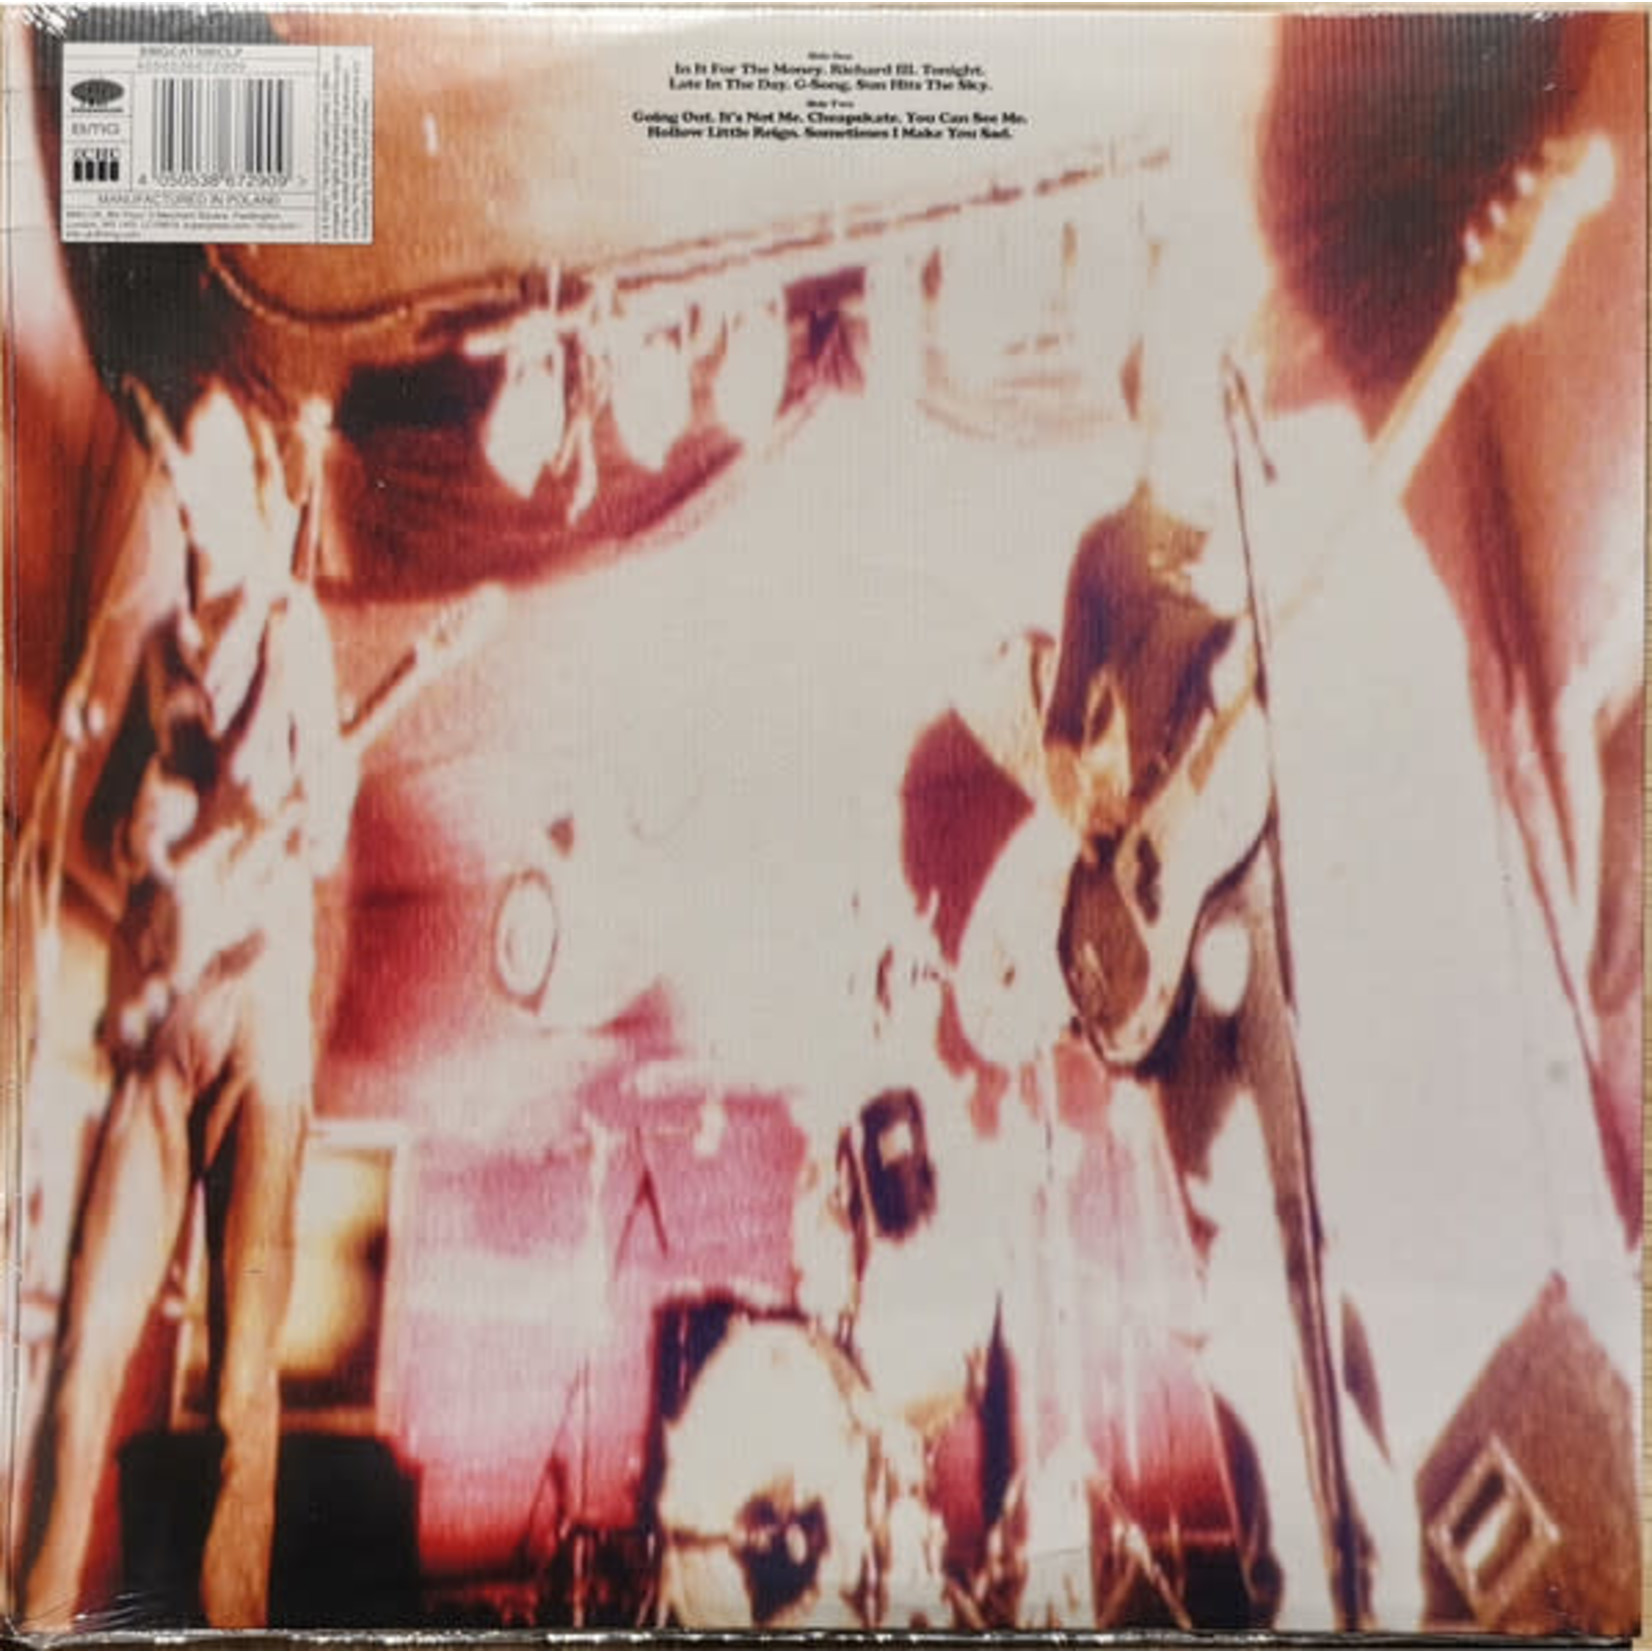 SUPERGRASS IN IT FOR THE MONEY (2021 REMASTER) INDIE TURQUOISE 2LP